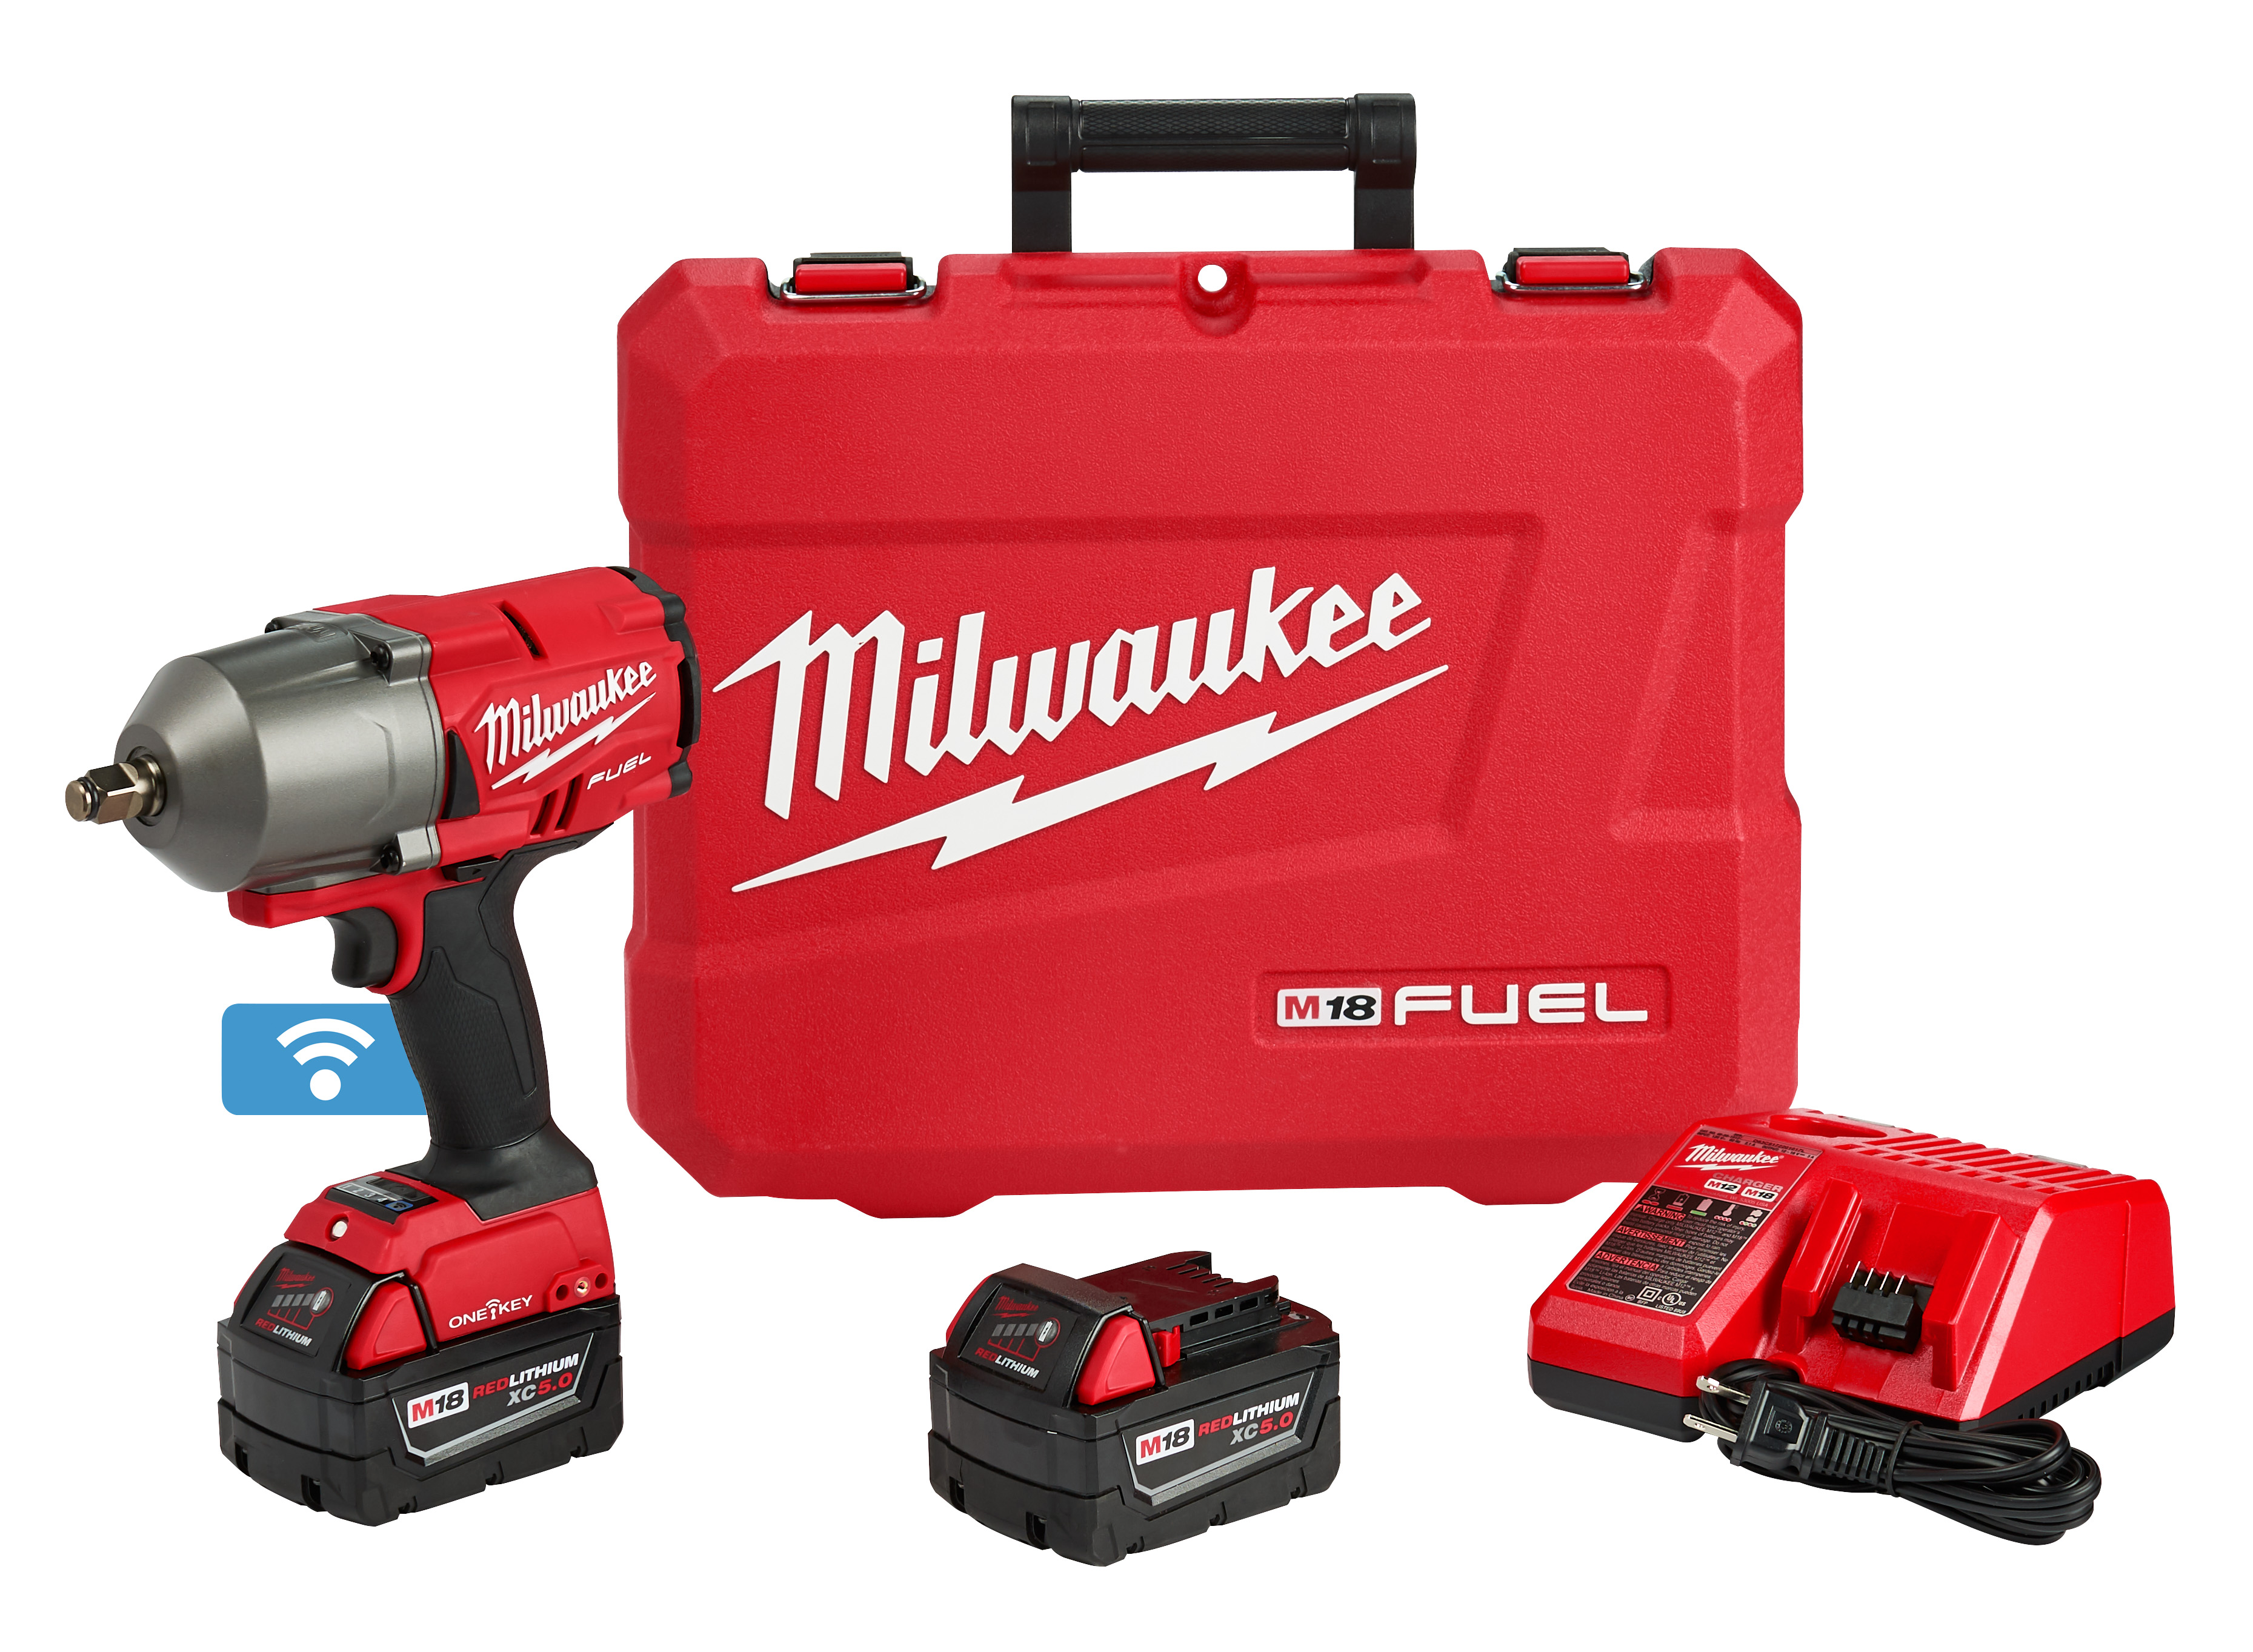 Milwaukee® M18 FUEL™ ONE-KEY™ 2863-22 Cordless High Torque Impact Wrench, 1/2 in 4-Mode Straight Drive, 2100 bpm, 1000/1400 ft-lb, 18 VDC, 8.39 in OAL